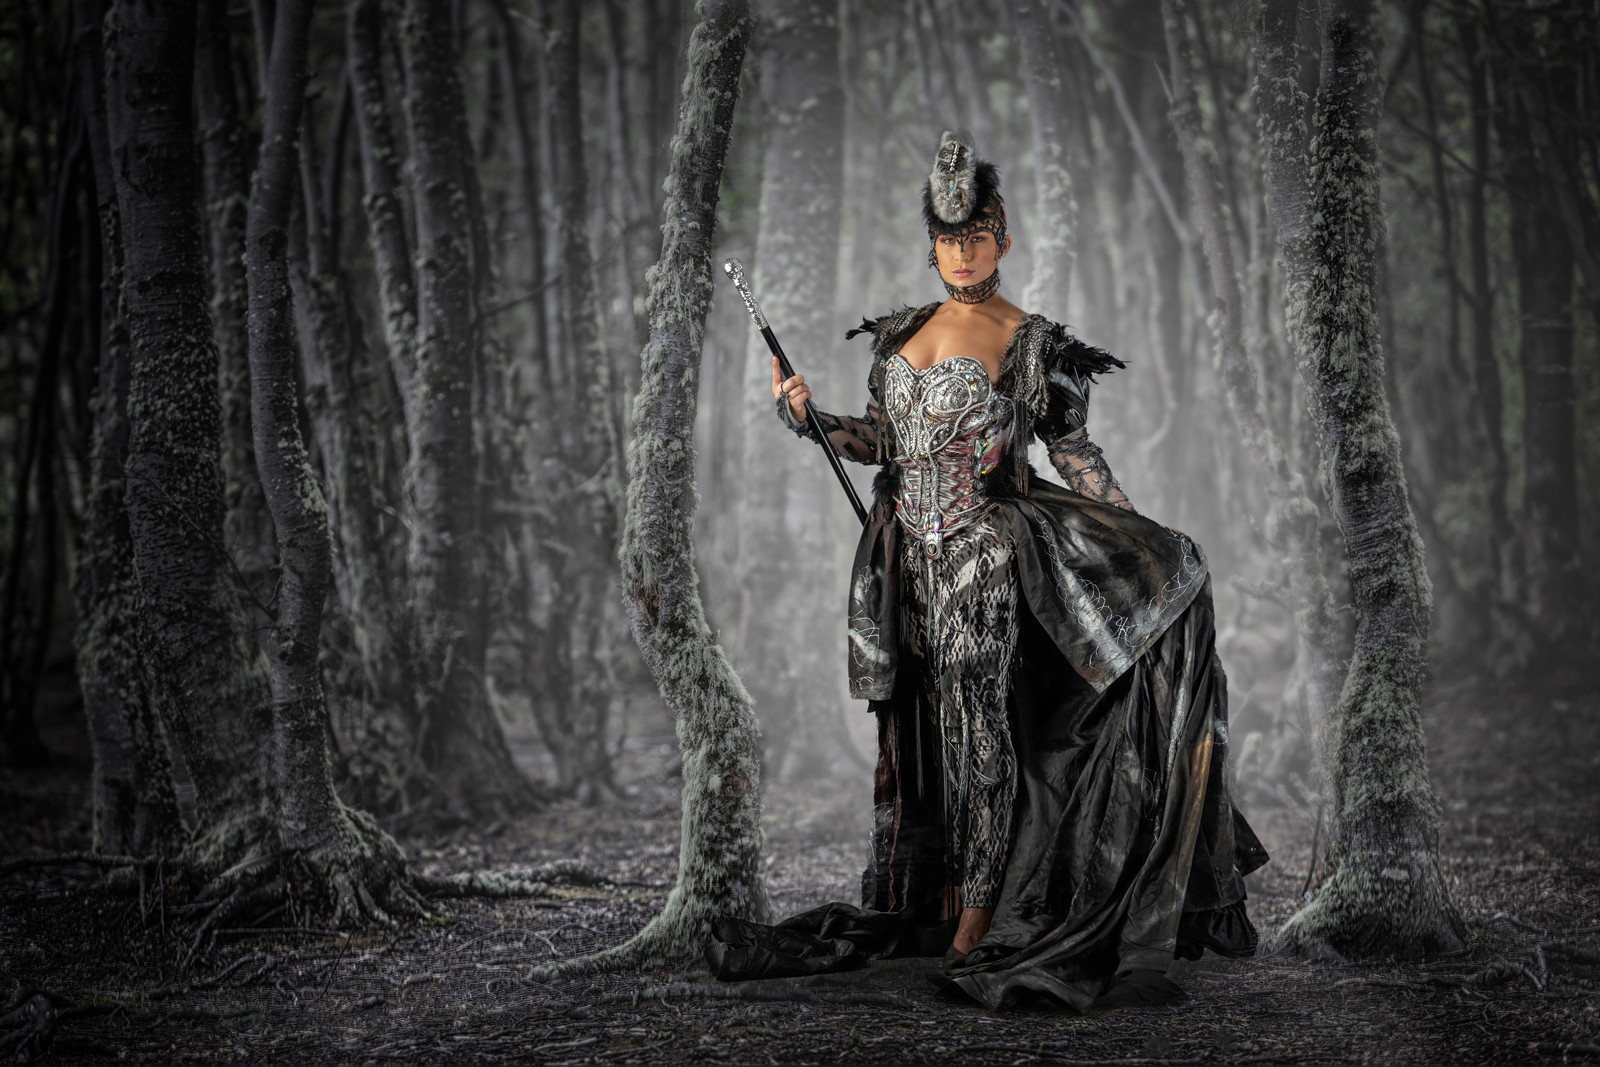 PDI - Enchantress of the Forest by Bob Given (19 marks)